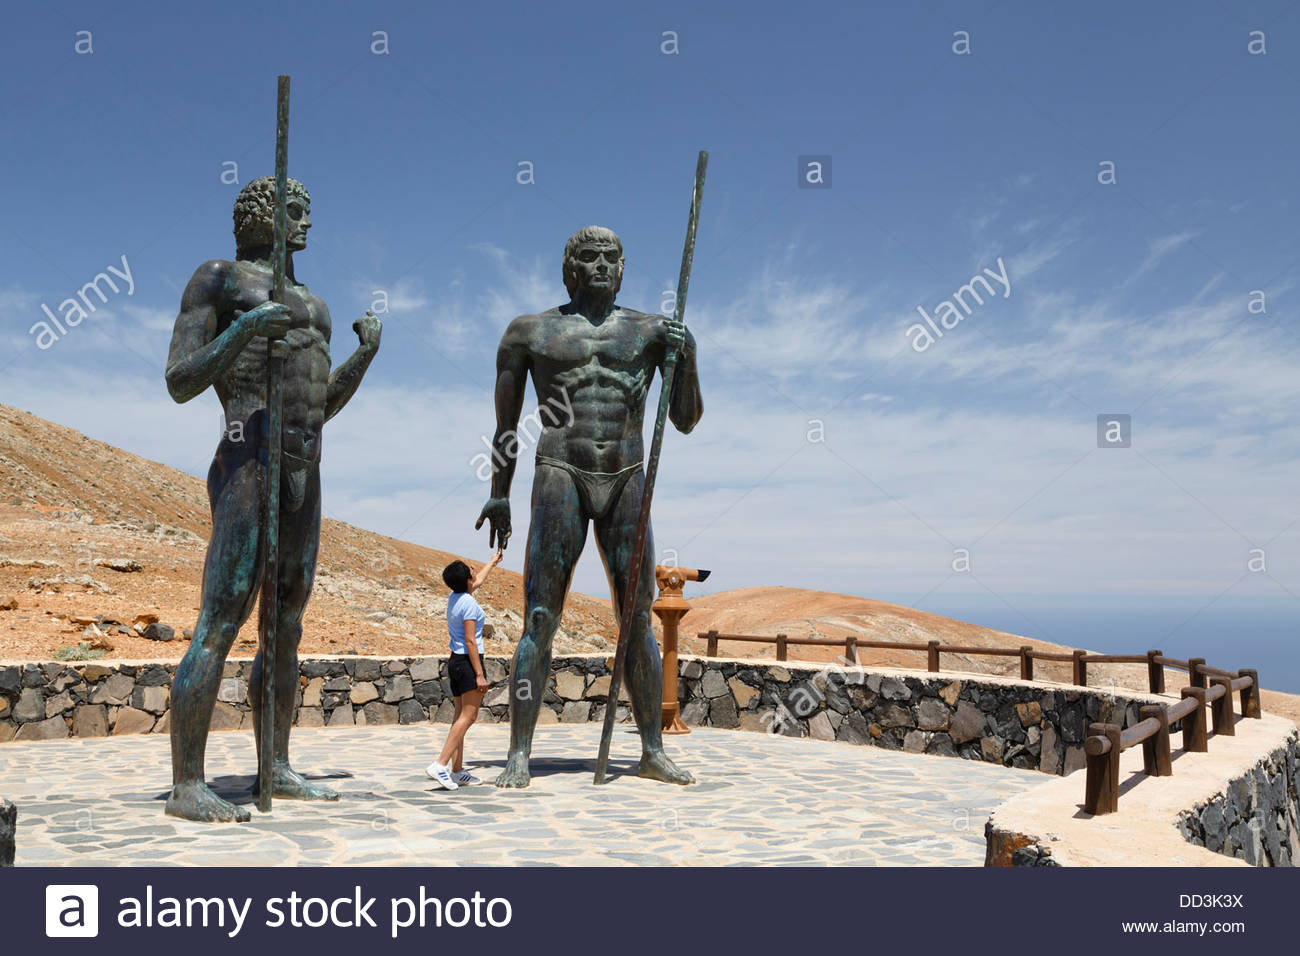 Statues of Guanche kings Guize and Ayose on Fuerteventura, Canary Islands Stock Photo